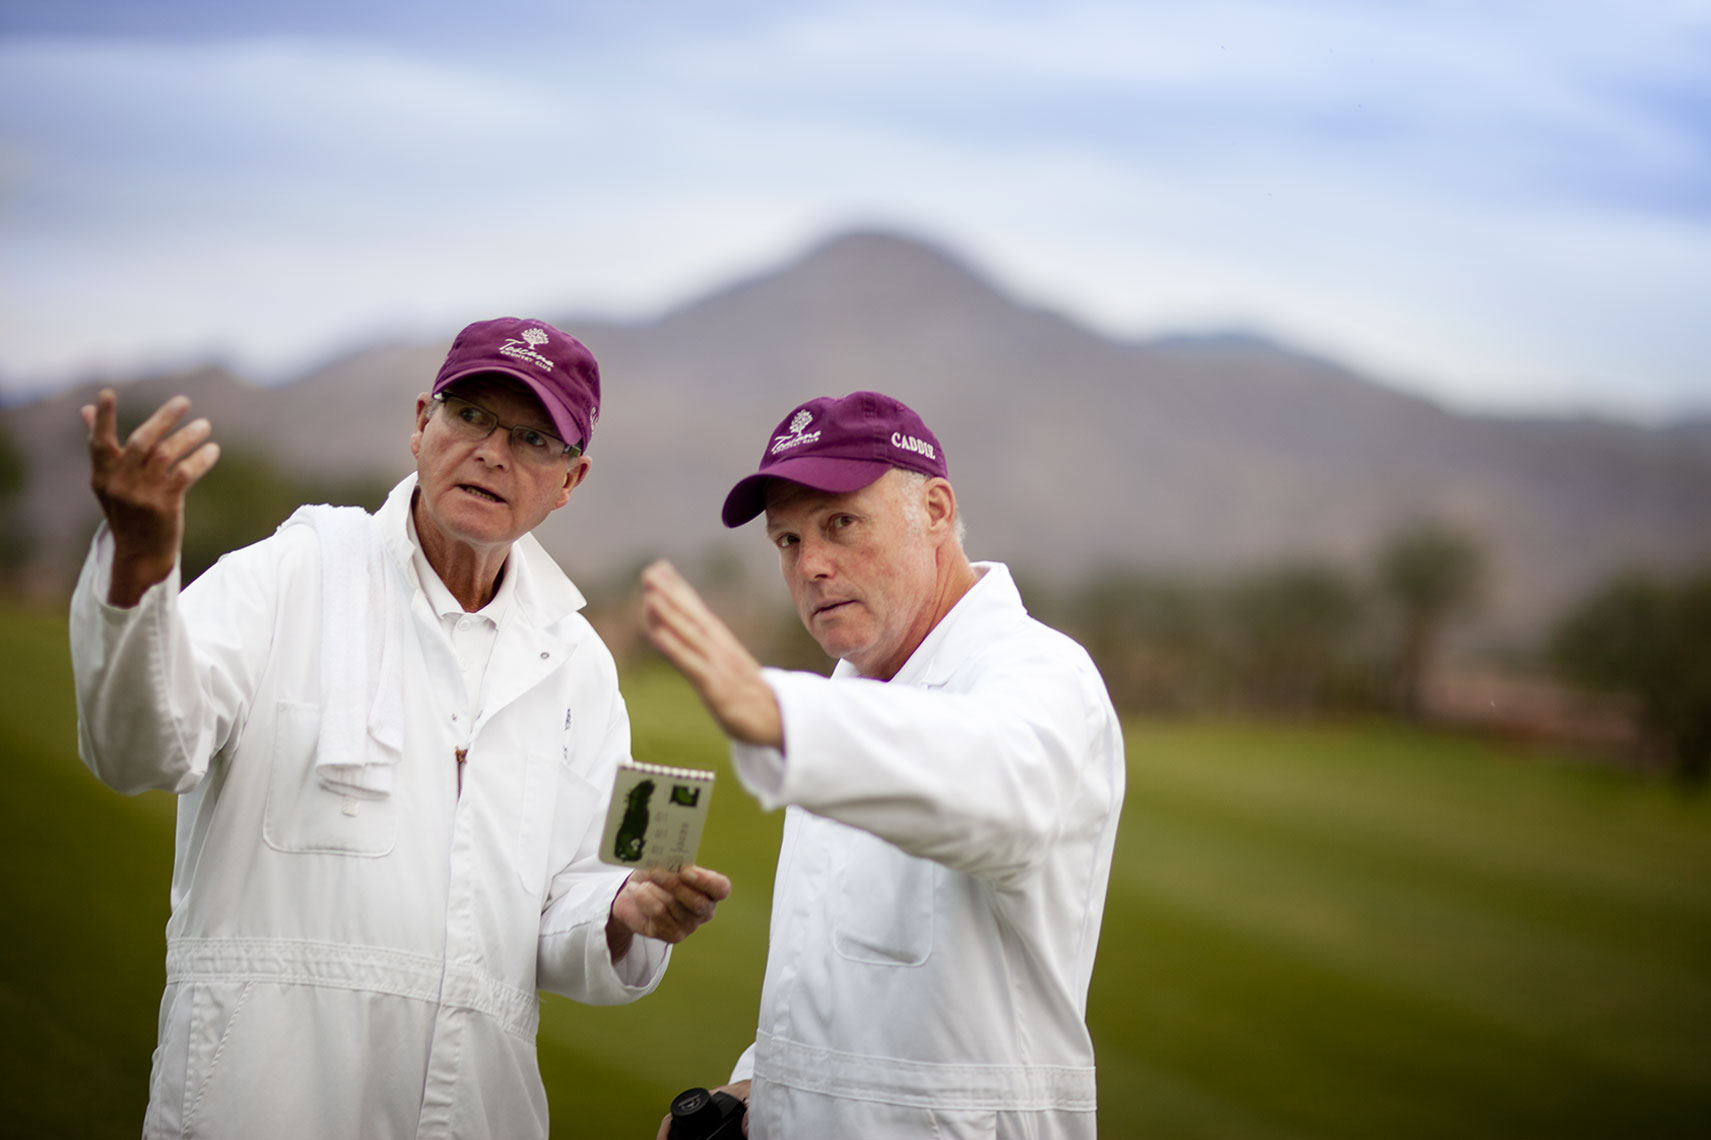 Compass_Toscana_Caddies_9262